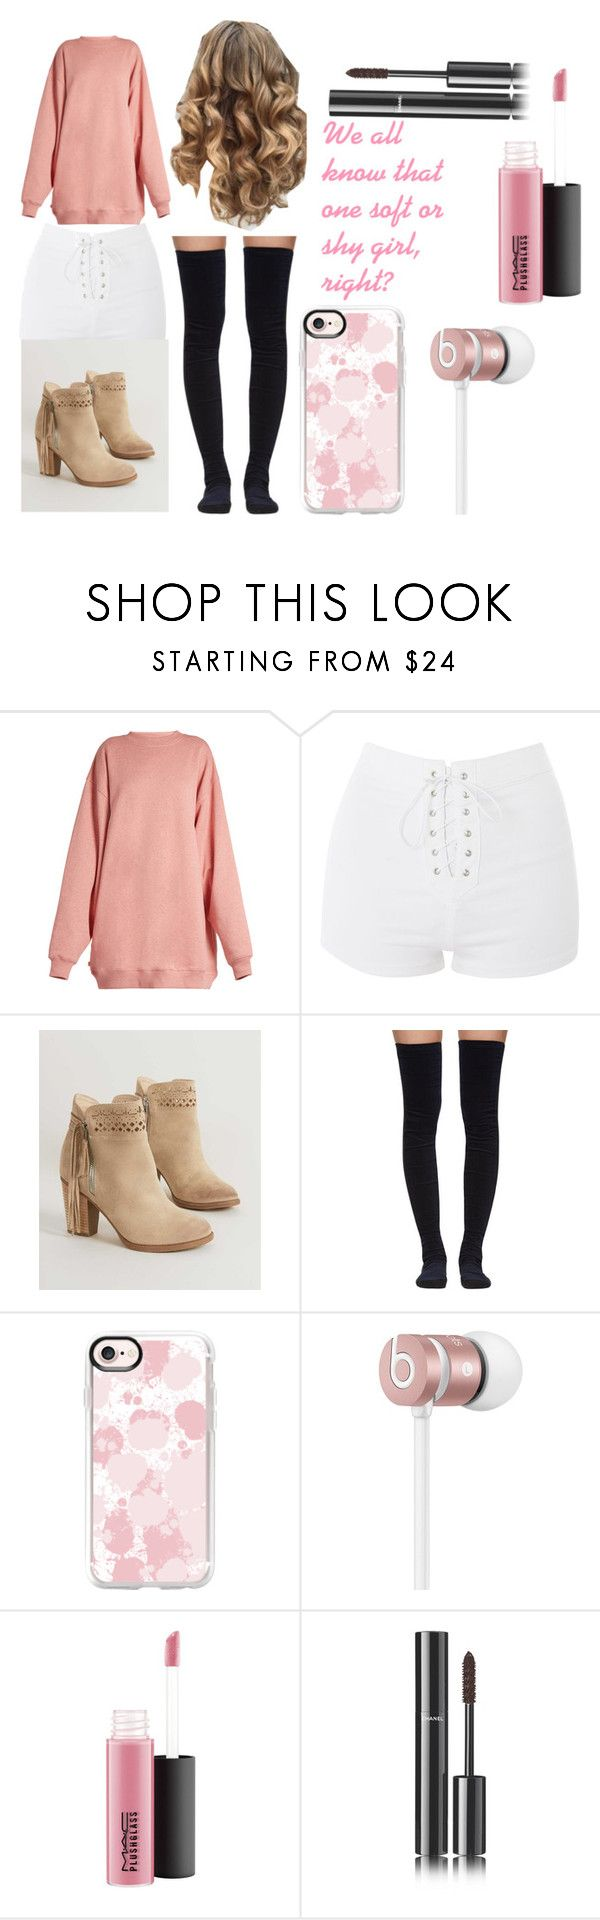 """""""soft/shy girl"""" by cheese-paper ❤ liked on Polyvore featuring Acne Studios, Topshop, Not Rated, Sacai, Casetify, Beats by Dr. Dre and Chanel"""